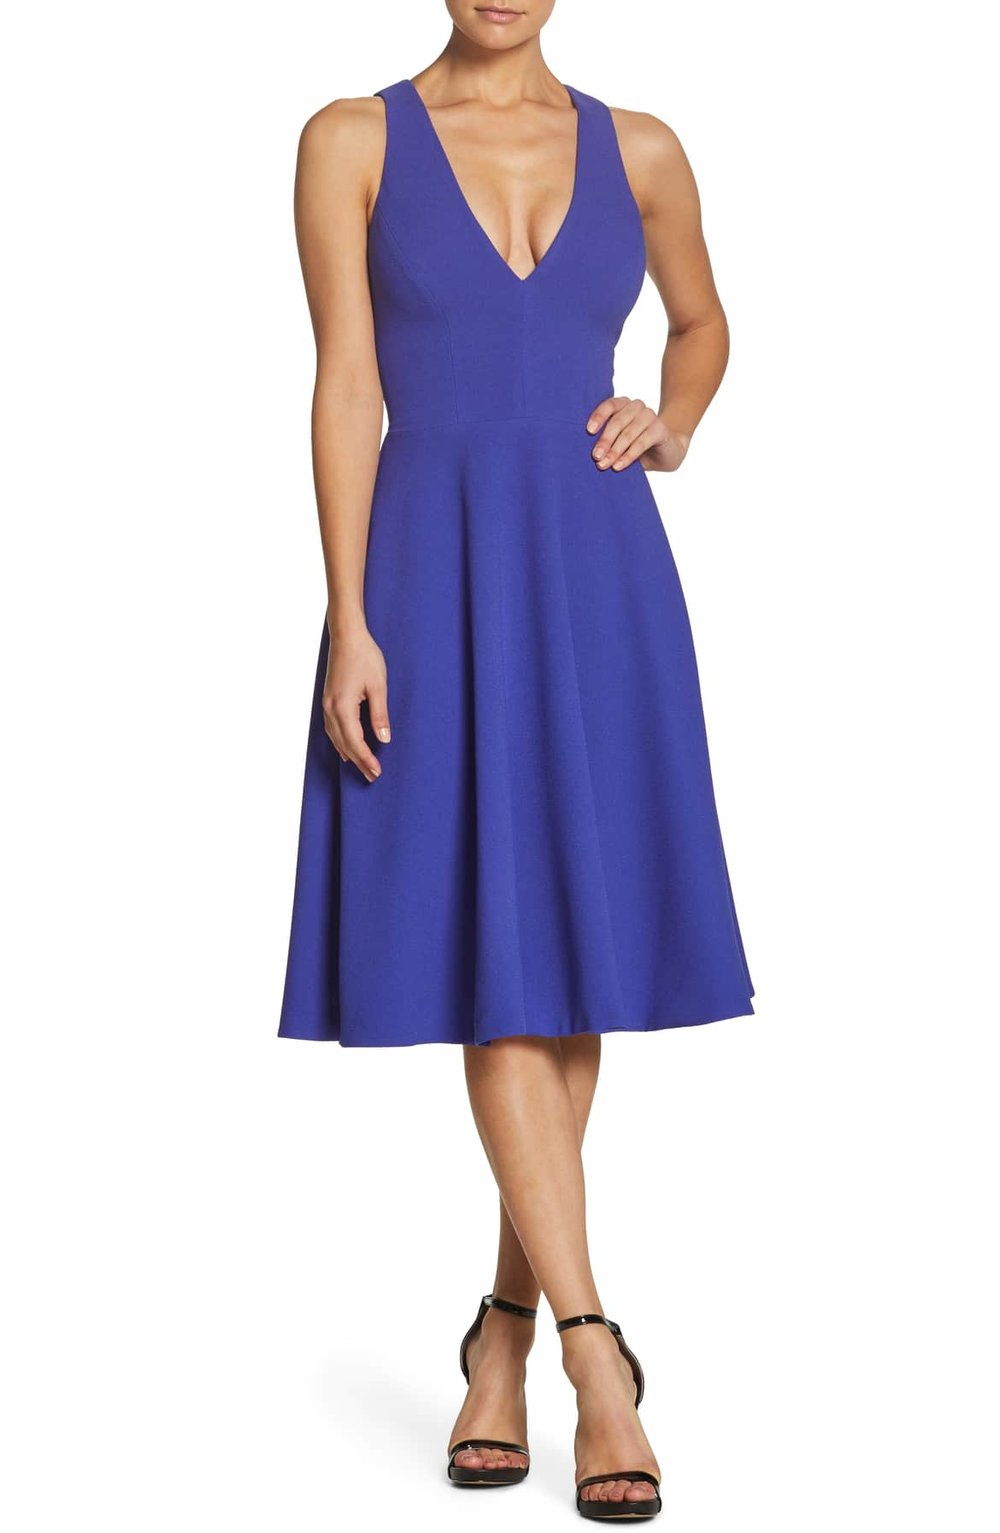 Dress The Population Catalina Tea Length Fit & Flare Dress - $182.00